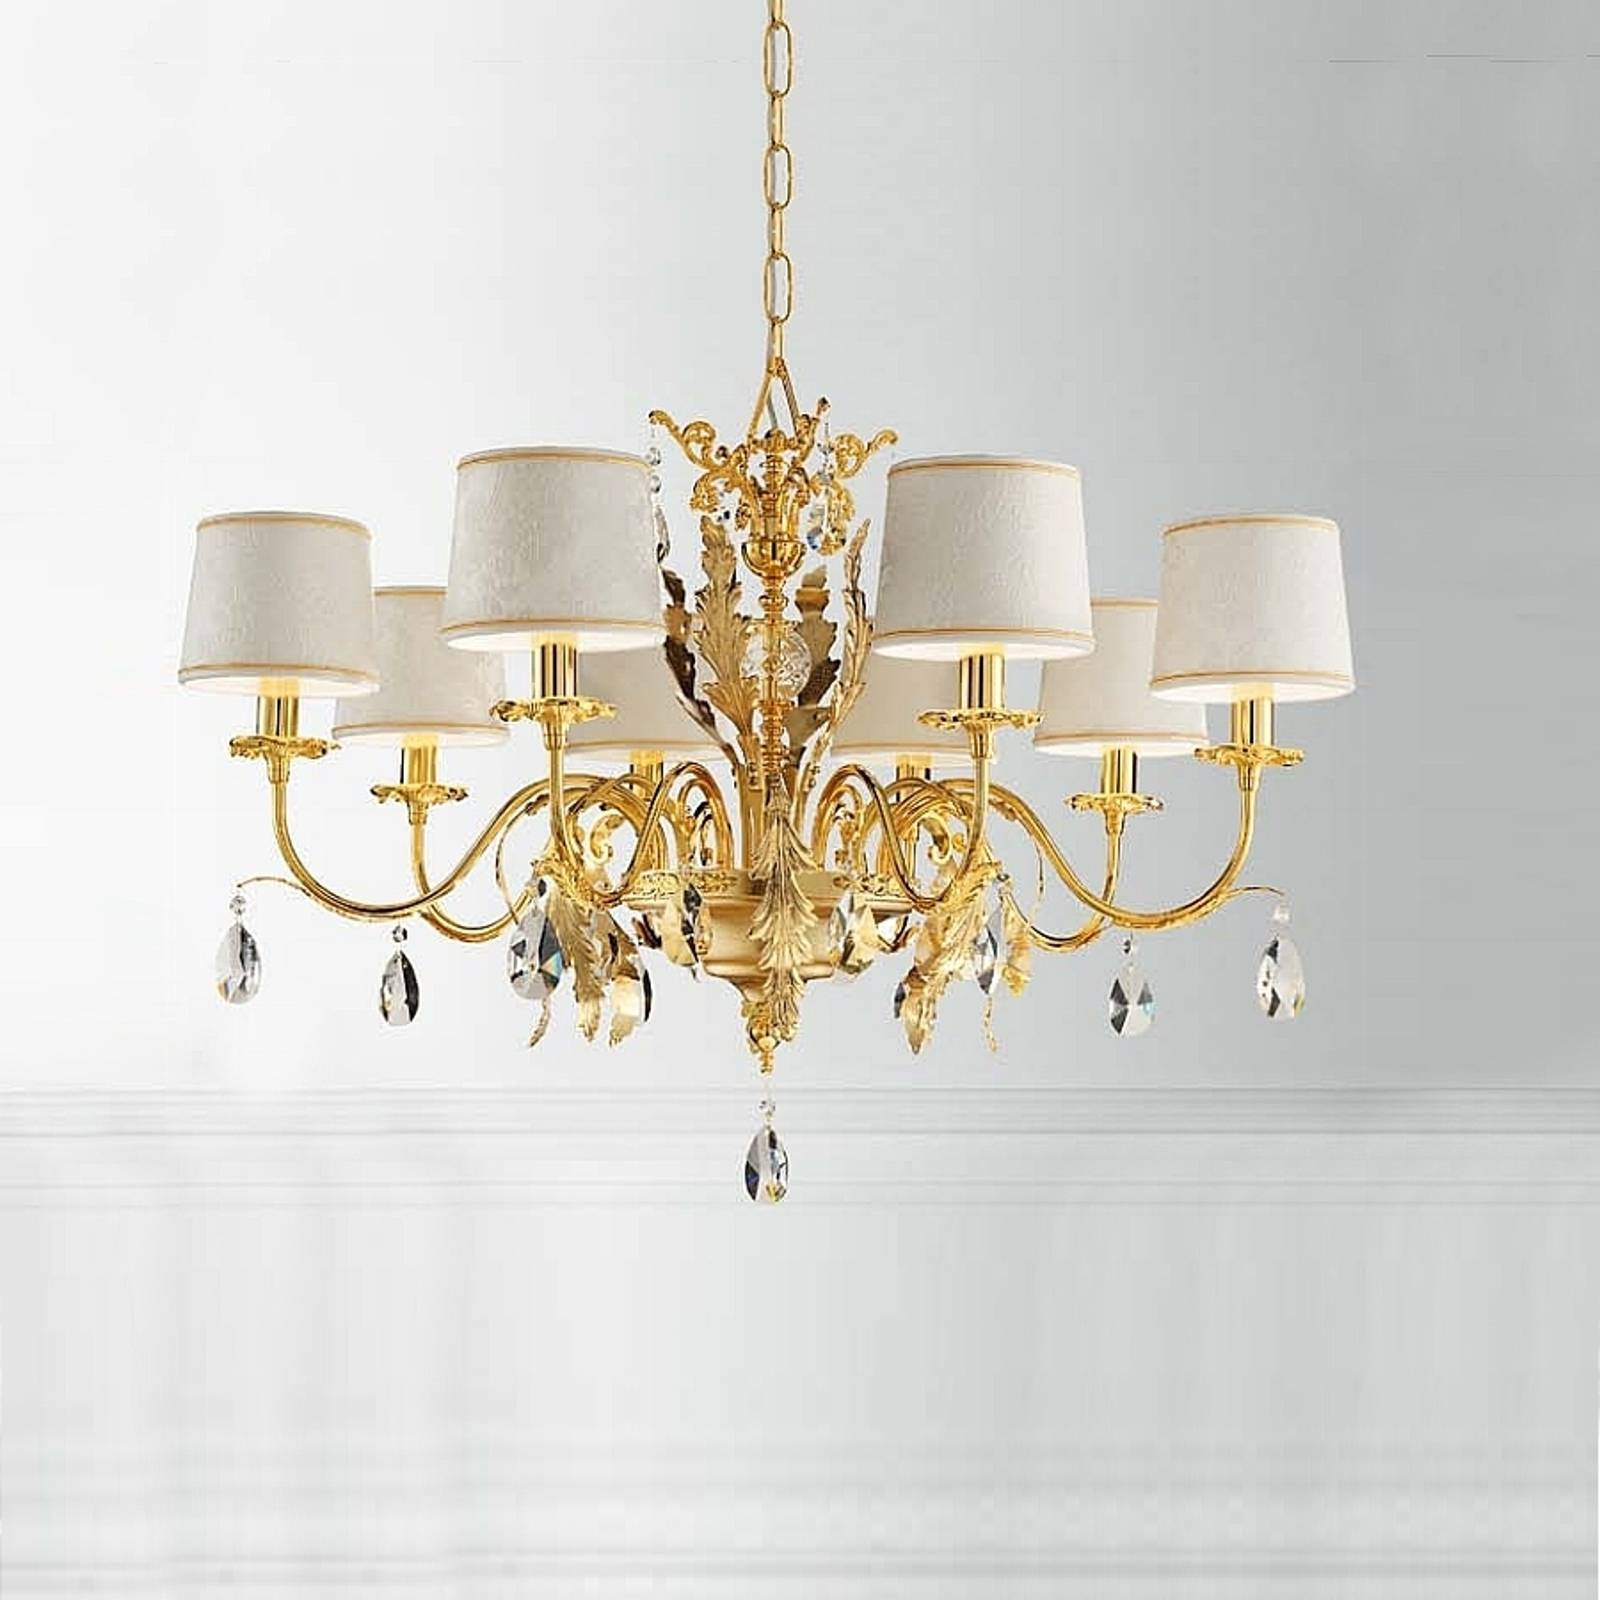 Angelis chandelier with damask shades, 8-bulb gold from Masiero